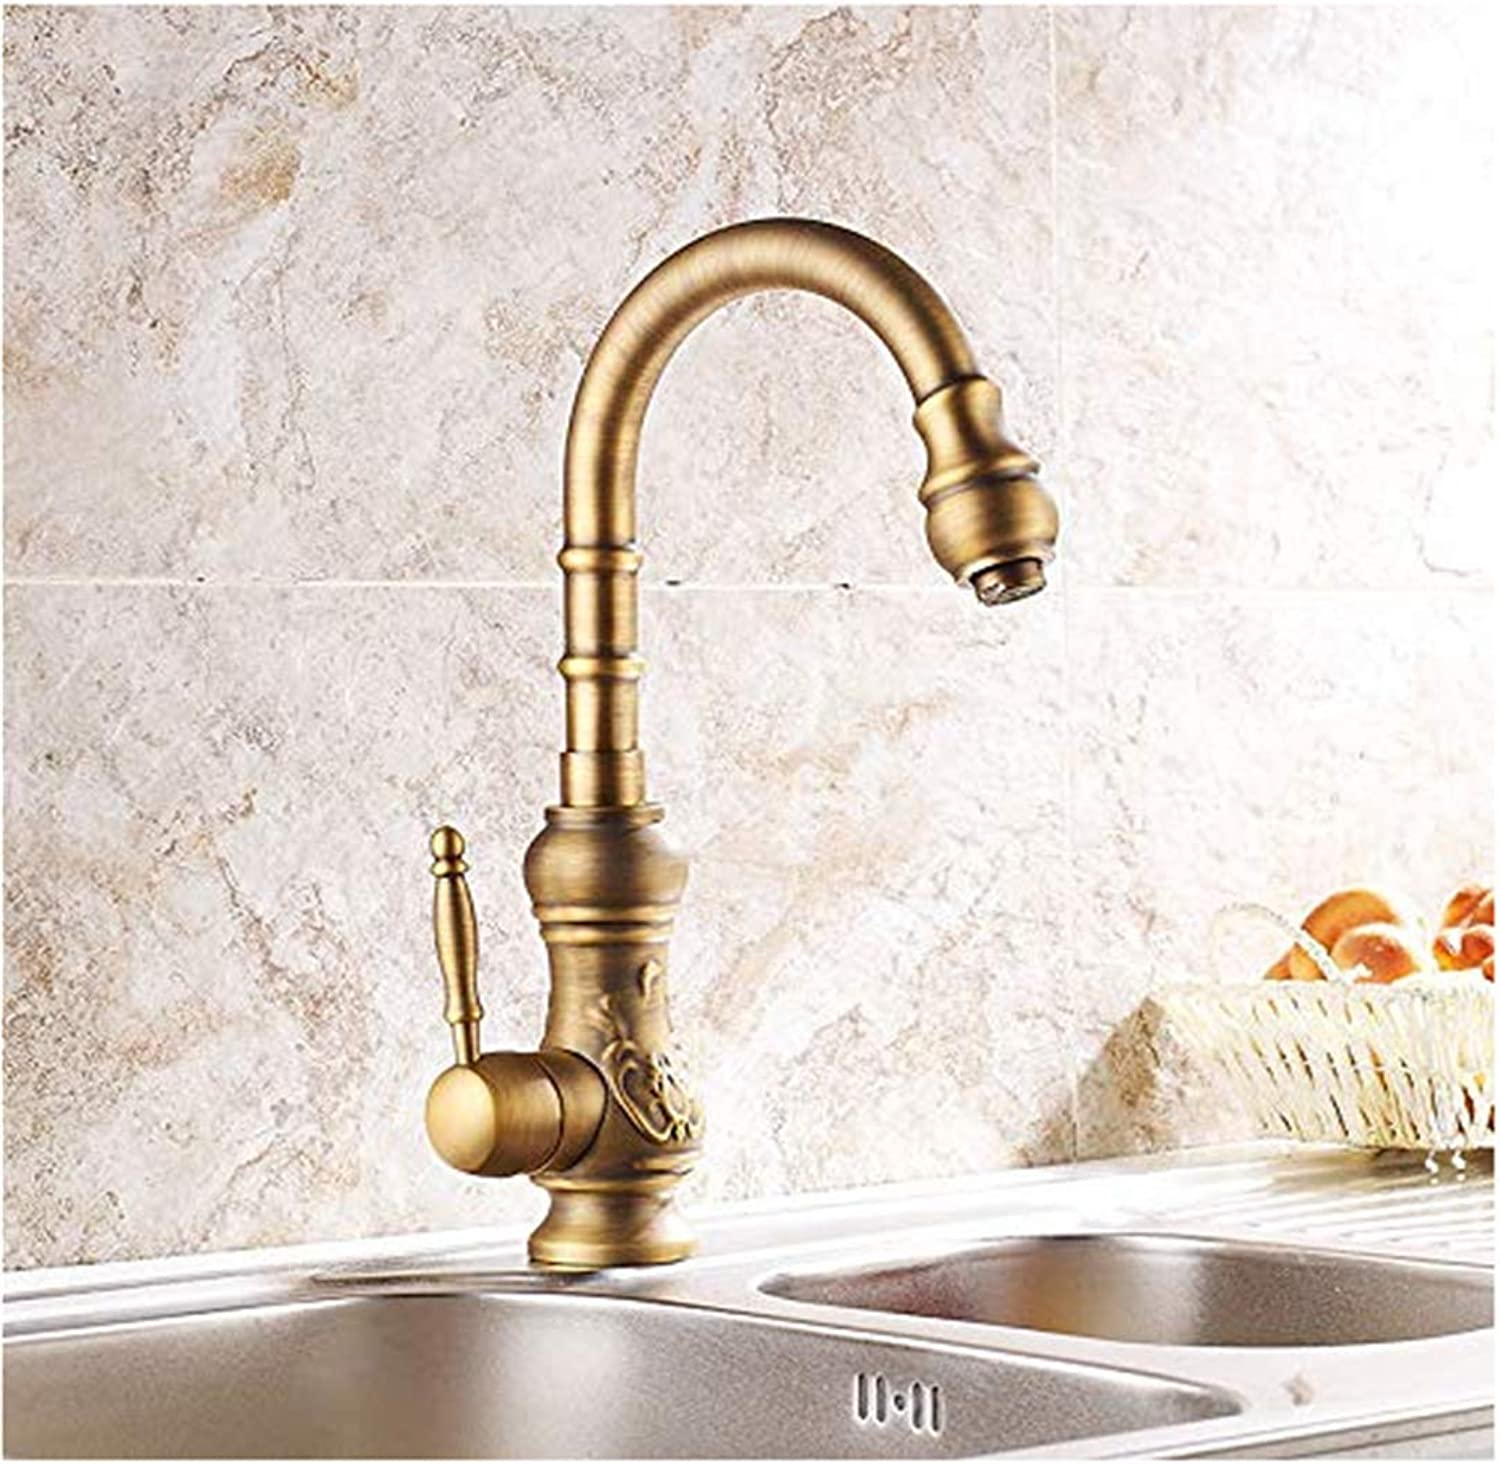 Modern Double Basin Sink Hot and Cold Water Faucetq9Jrgsha